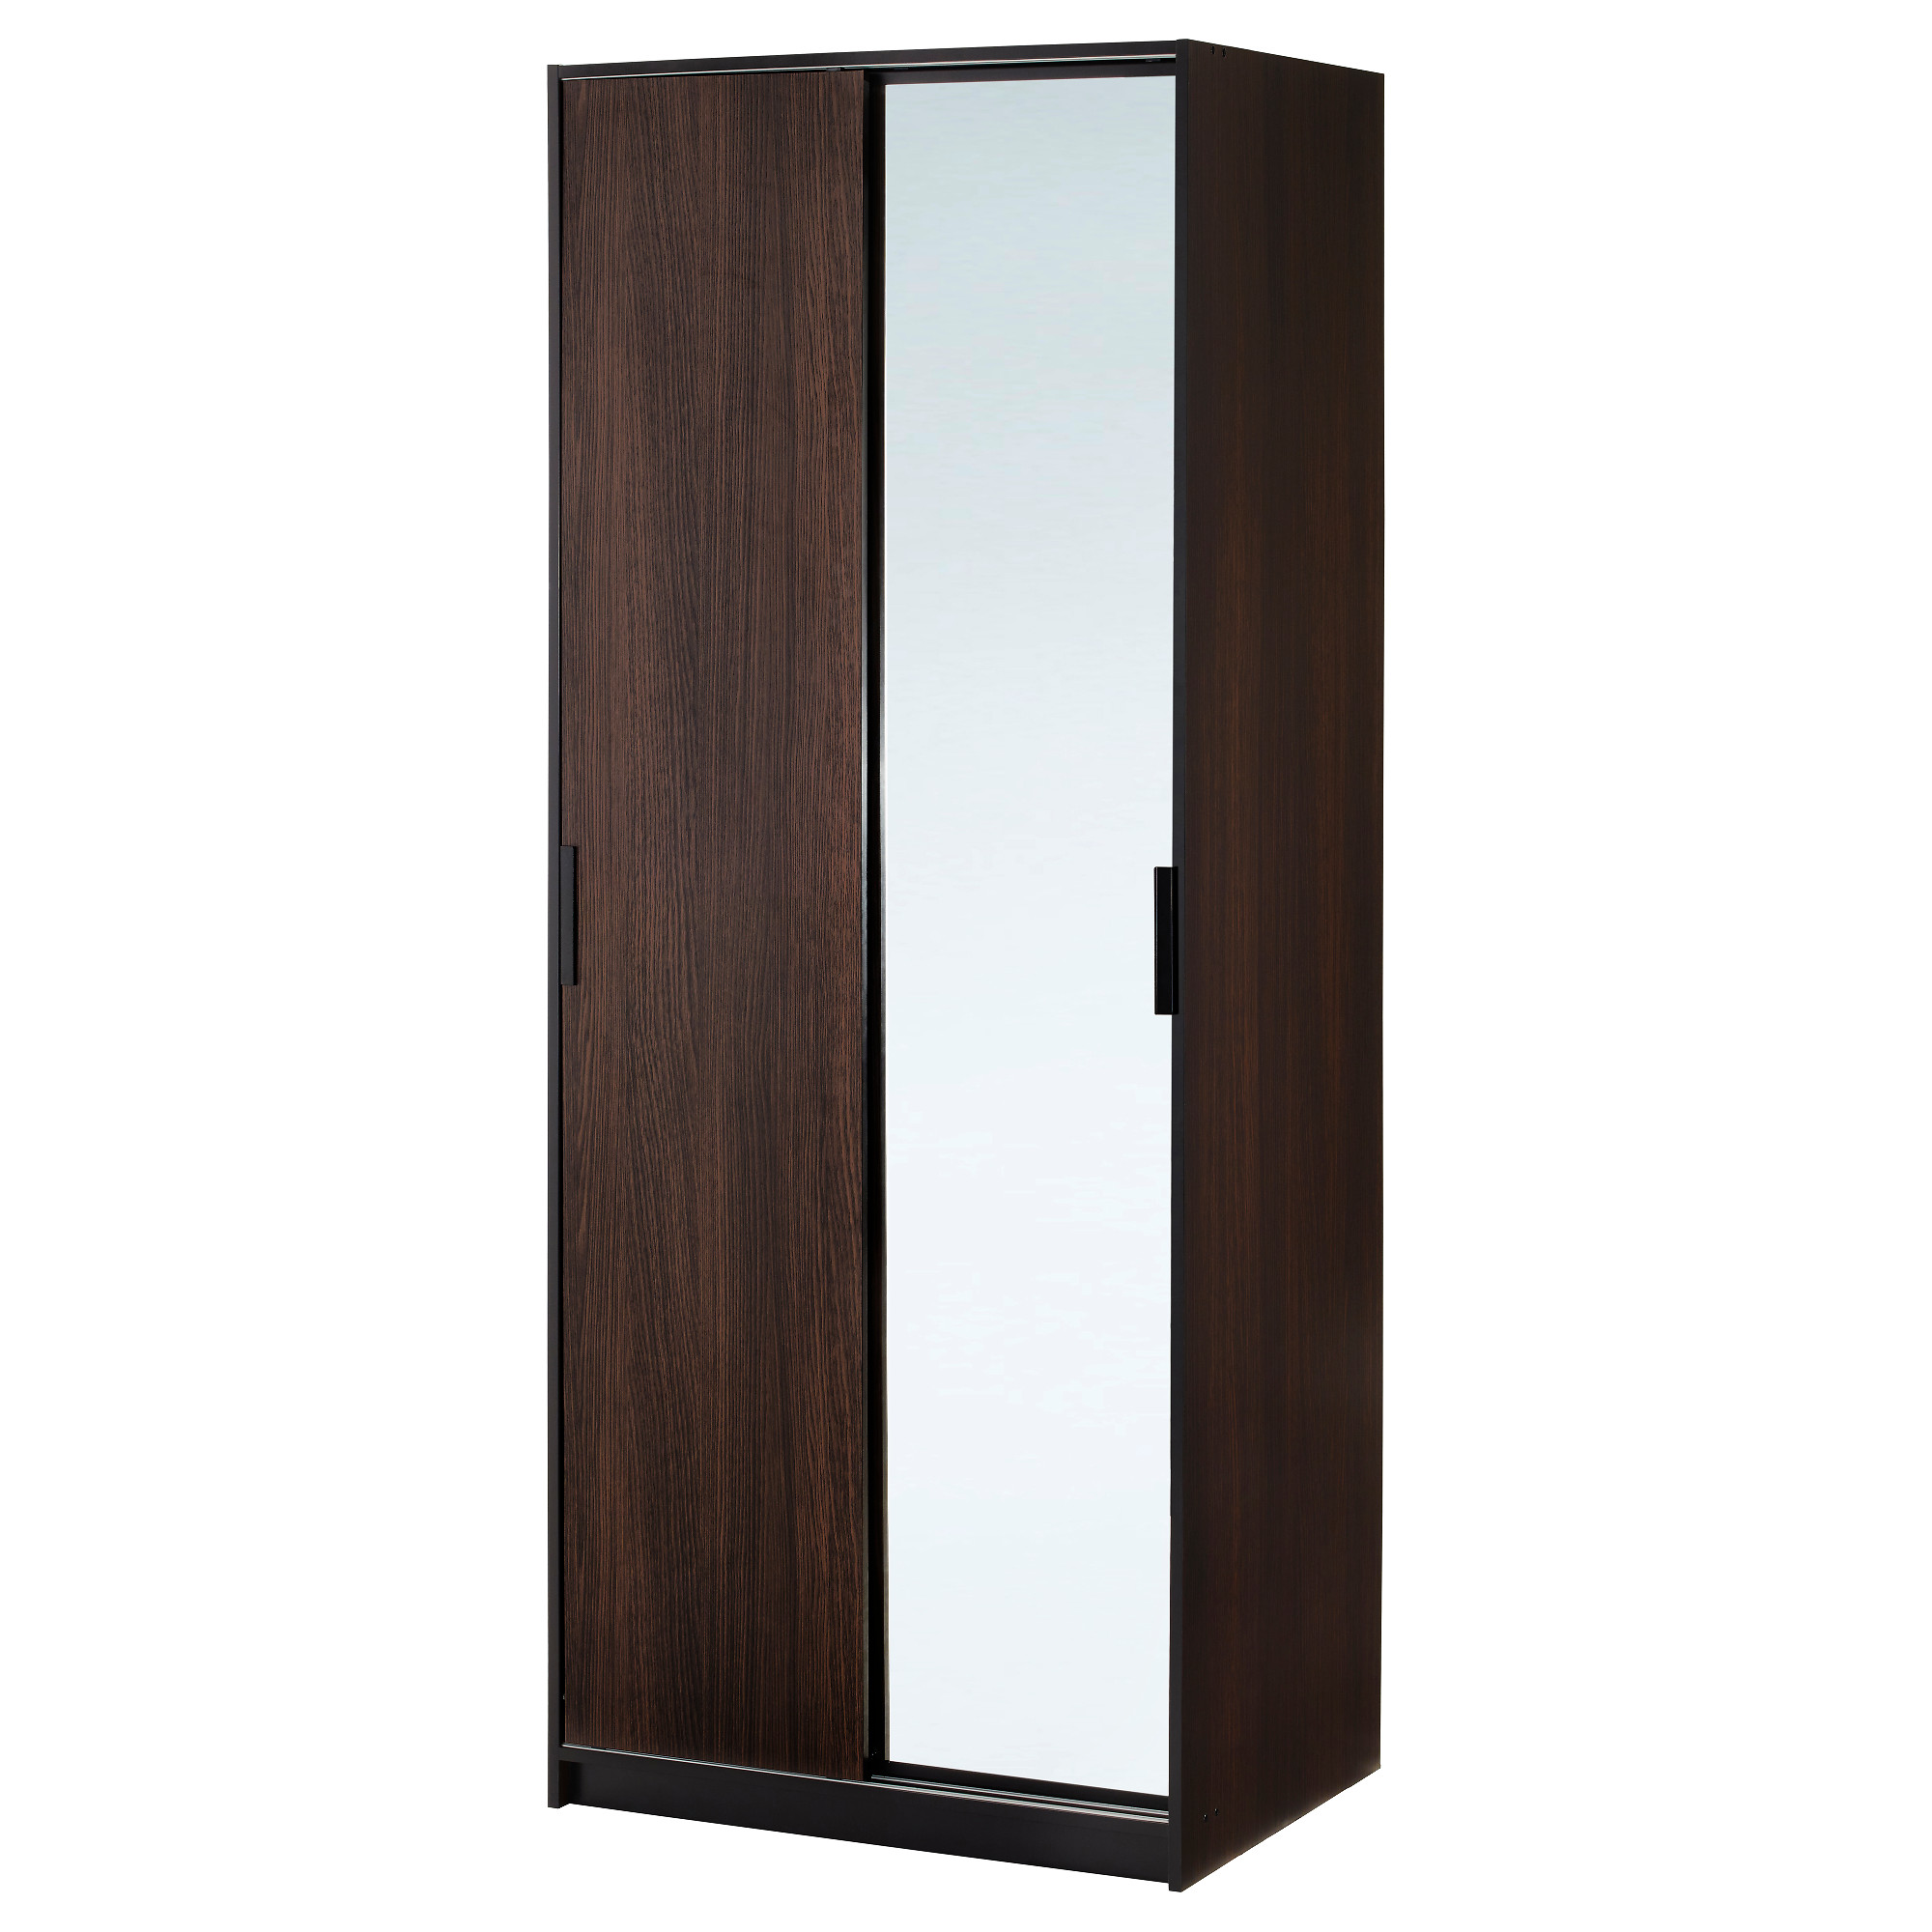 Unique TRYSIL wardrobe, dark brown, mirror glass Width: 31 1/4  portable wardrobe closet